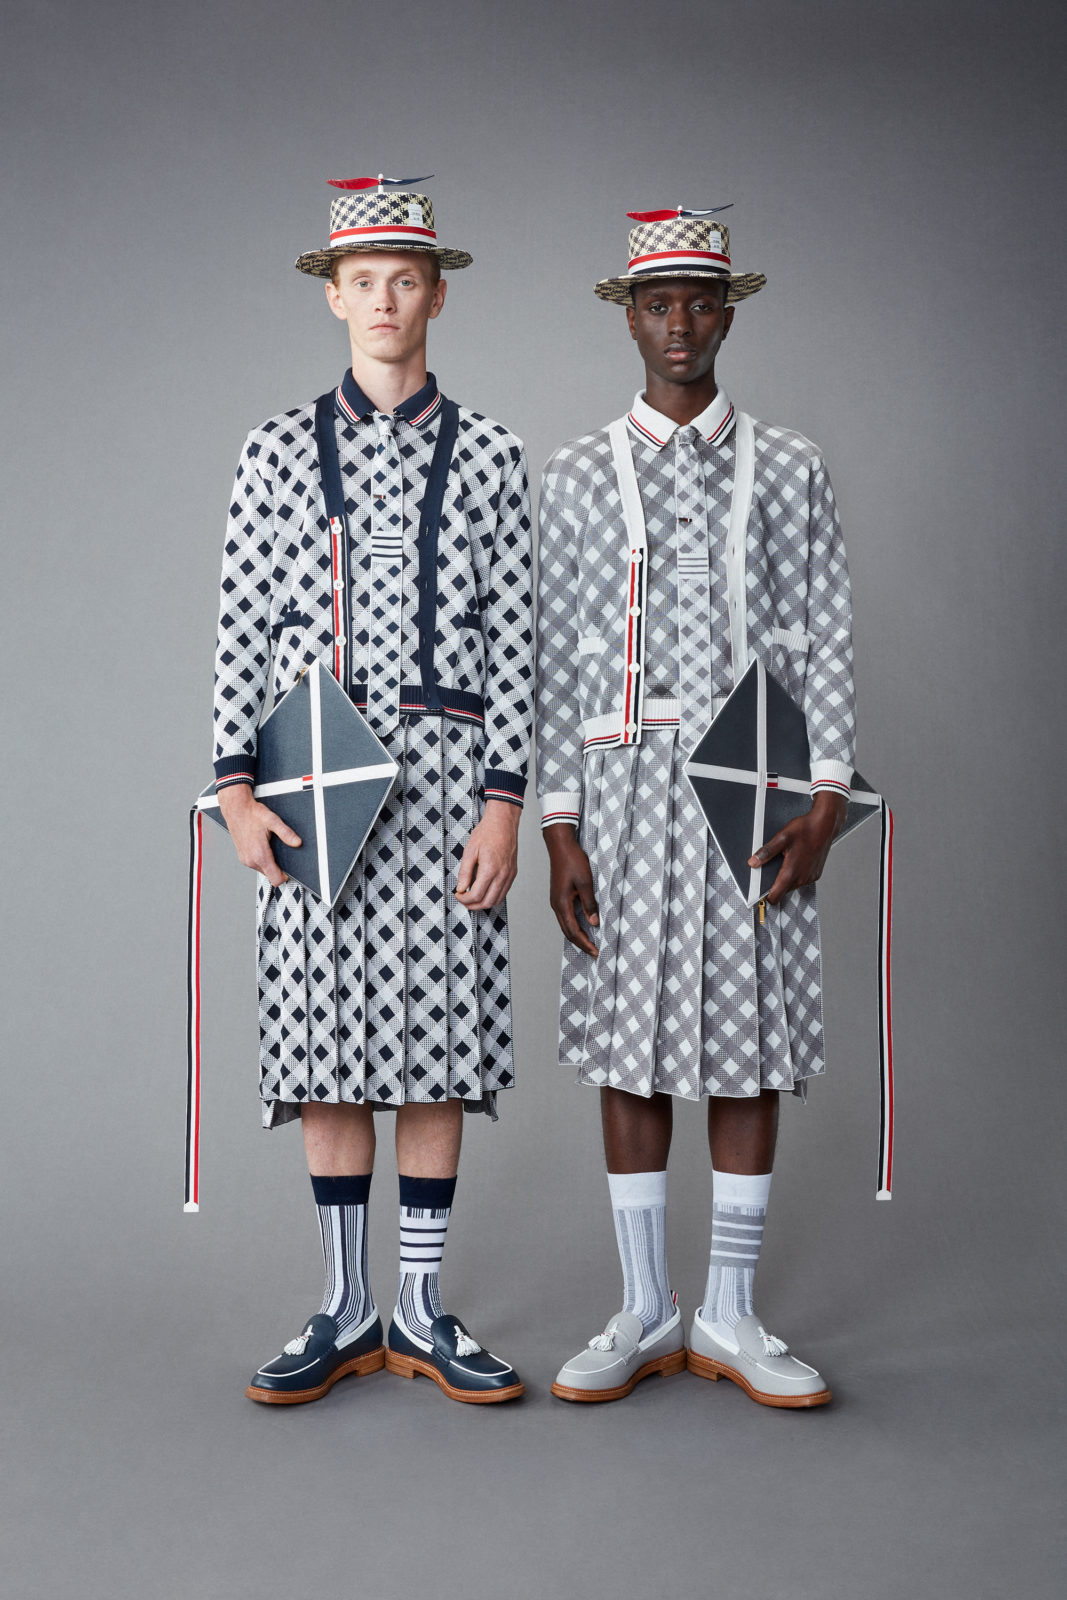 THOM BROWNE COLLECTION HOMME SPRING 1 2022